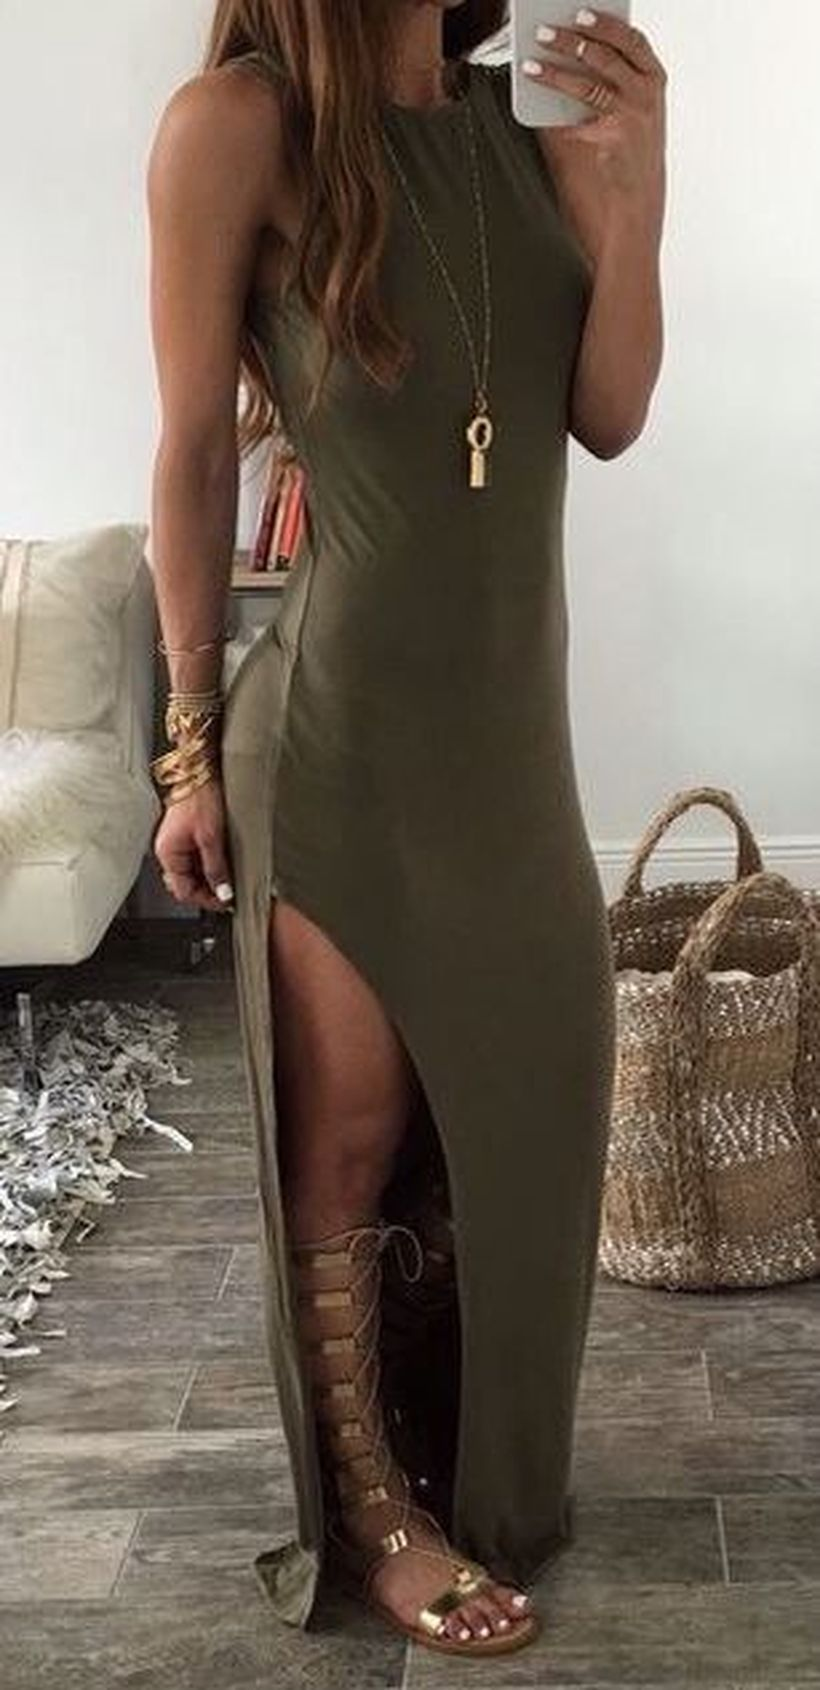 Fashionable day to night fashion outfits ideas 88